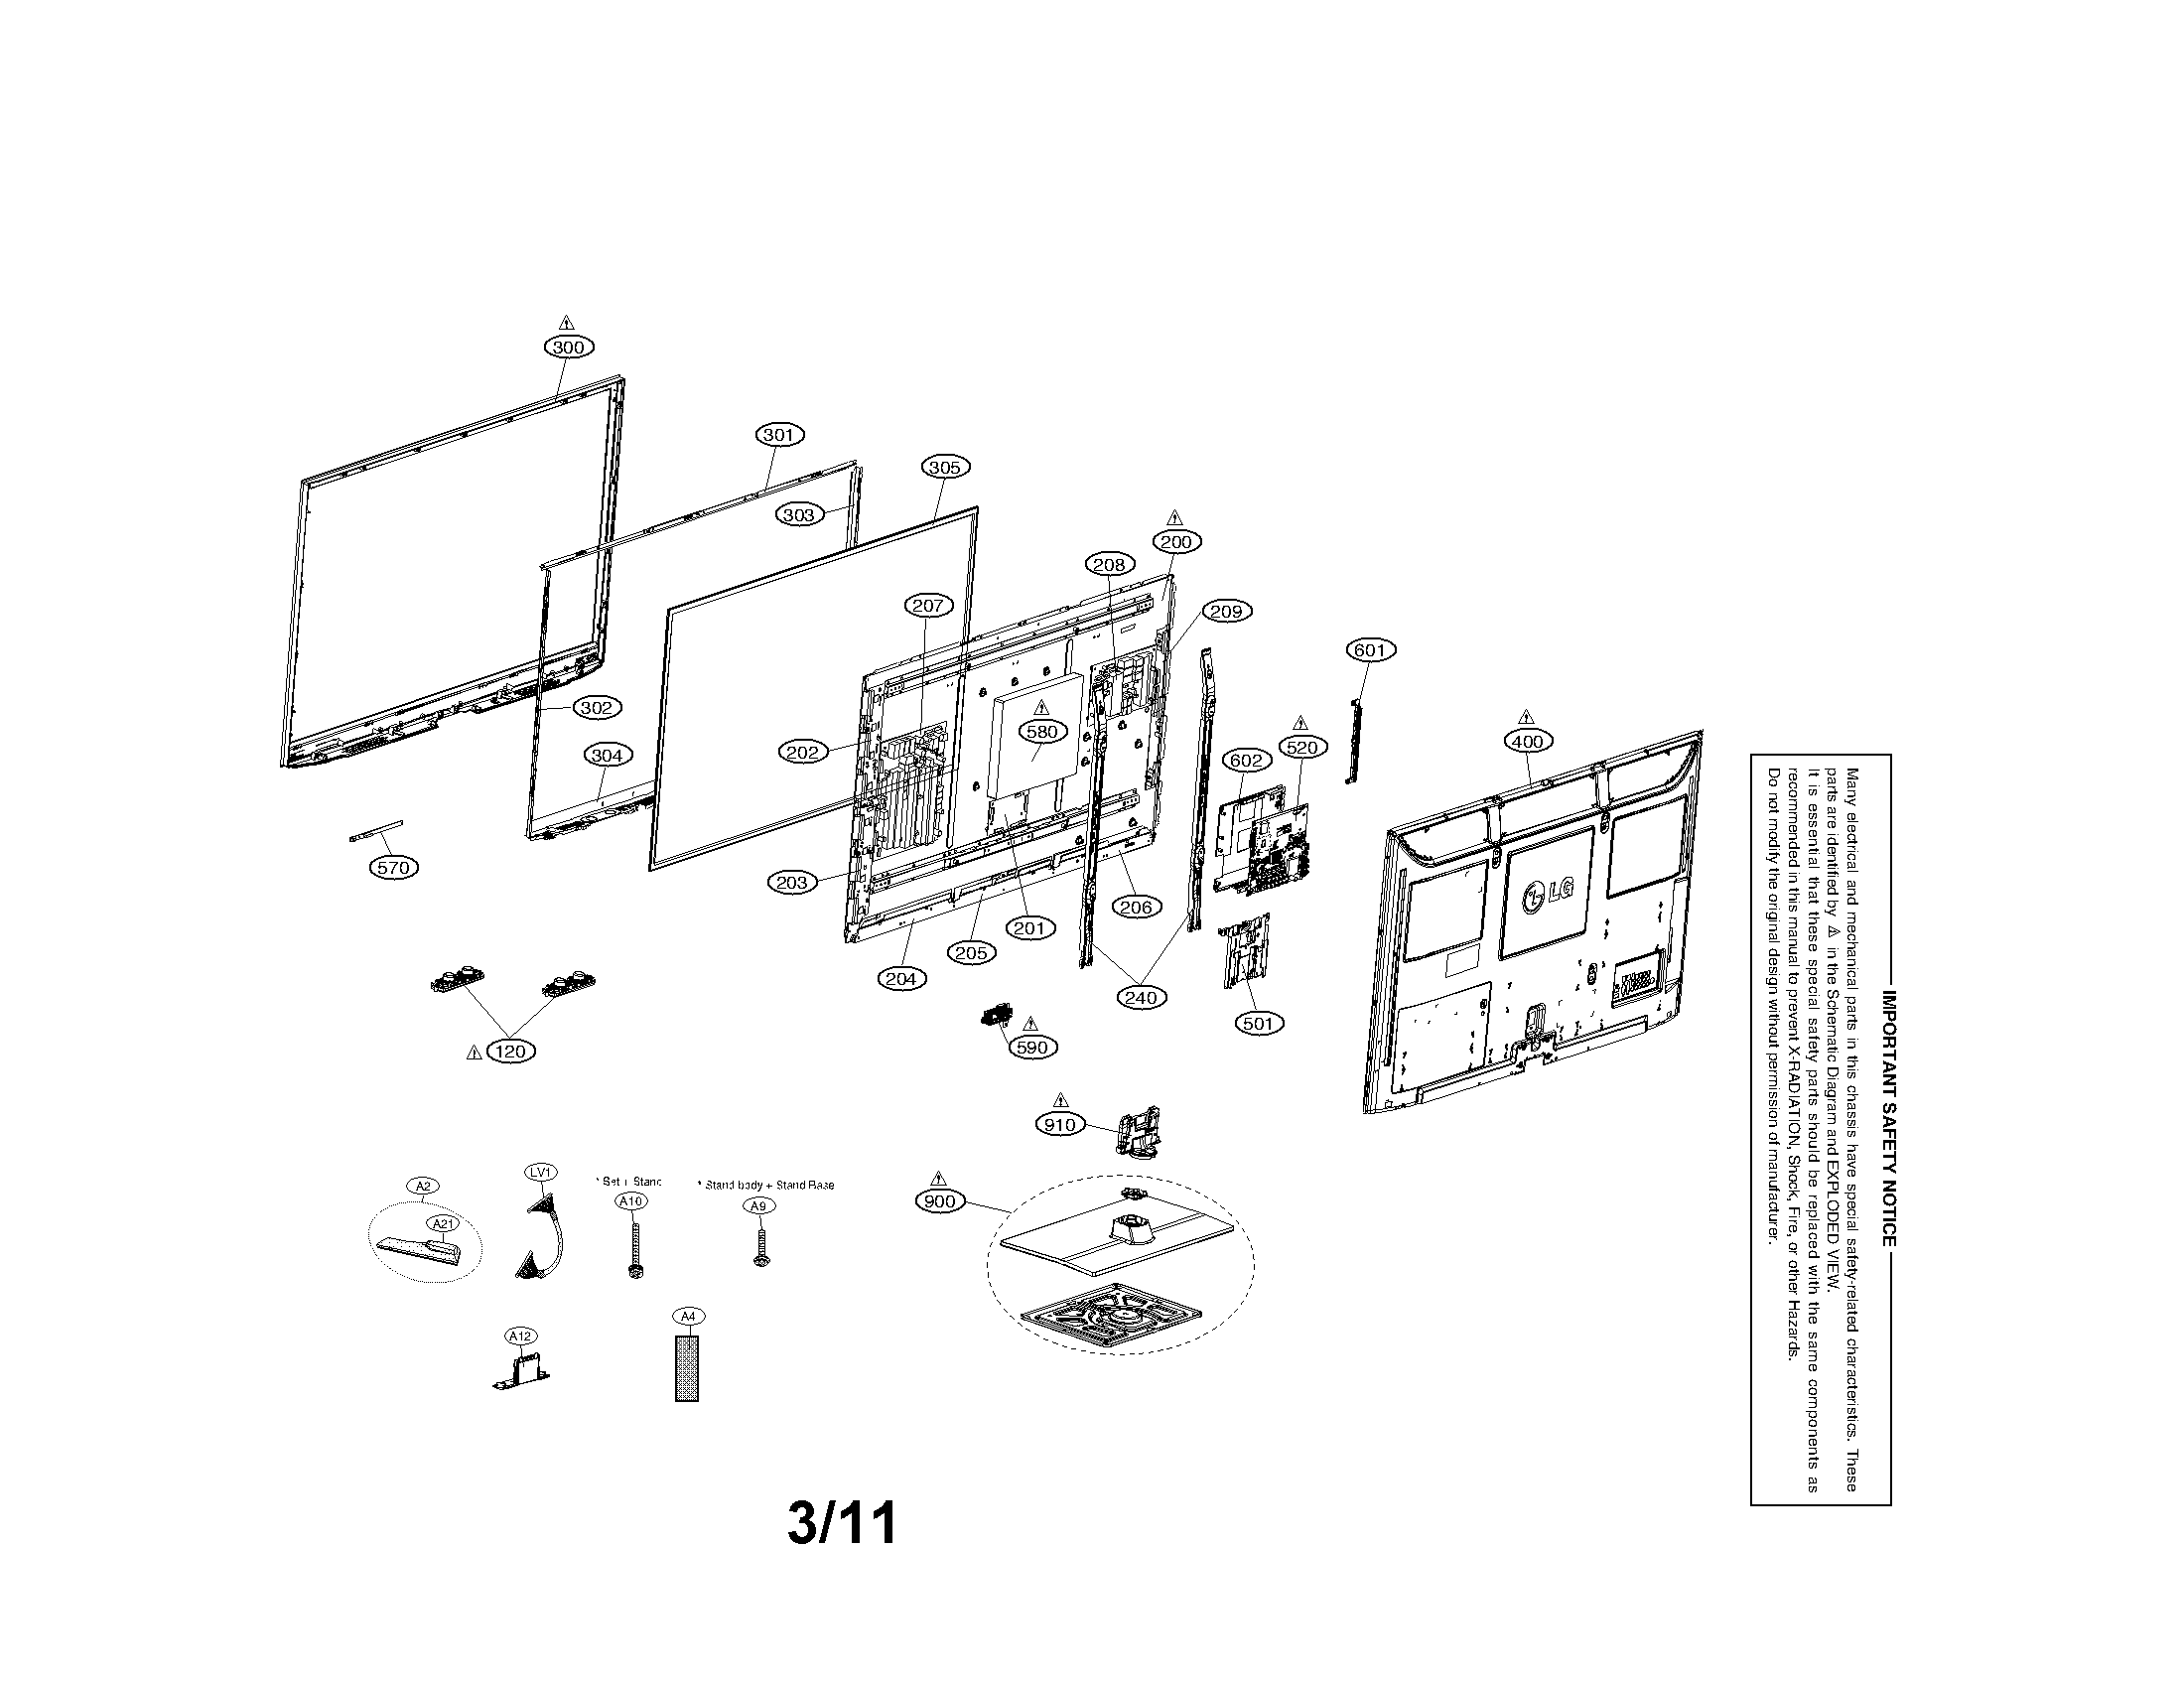 LG 50PT350 exploded view parts diagram